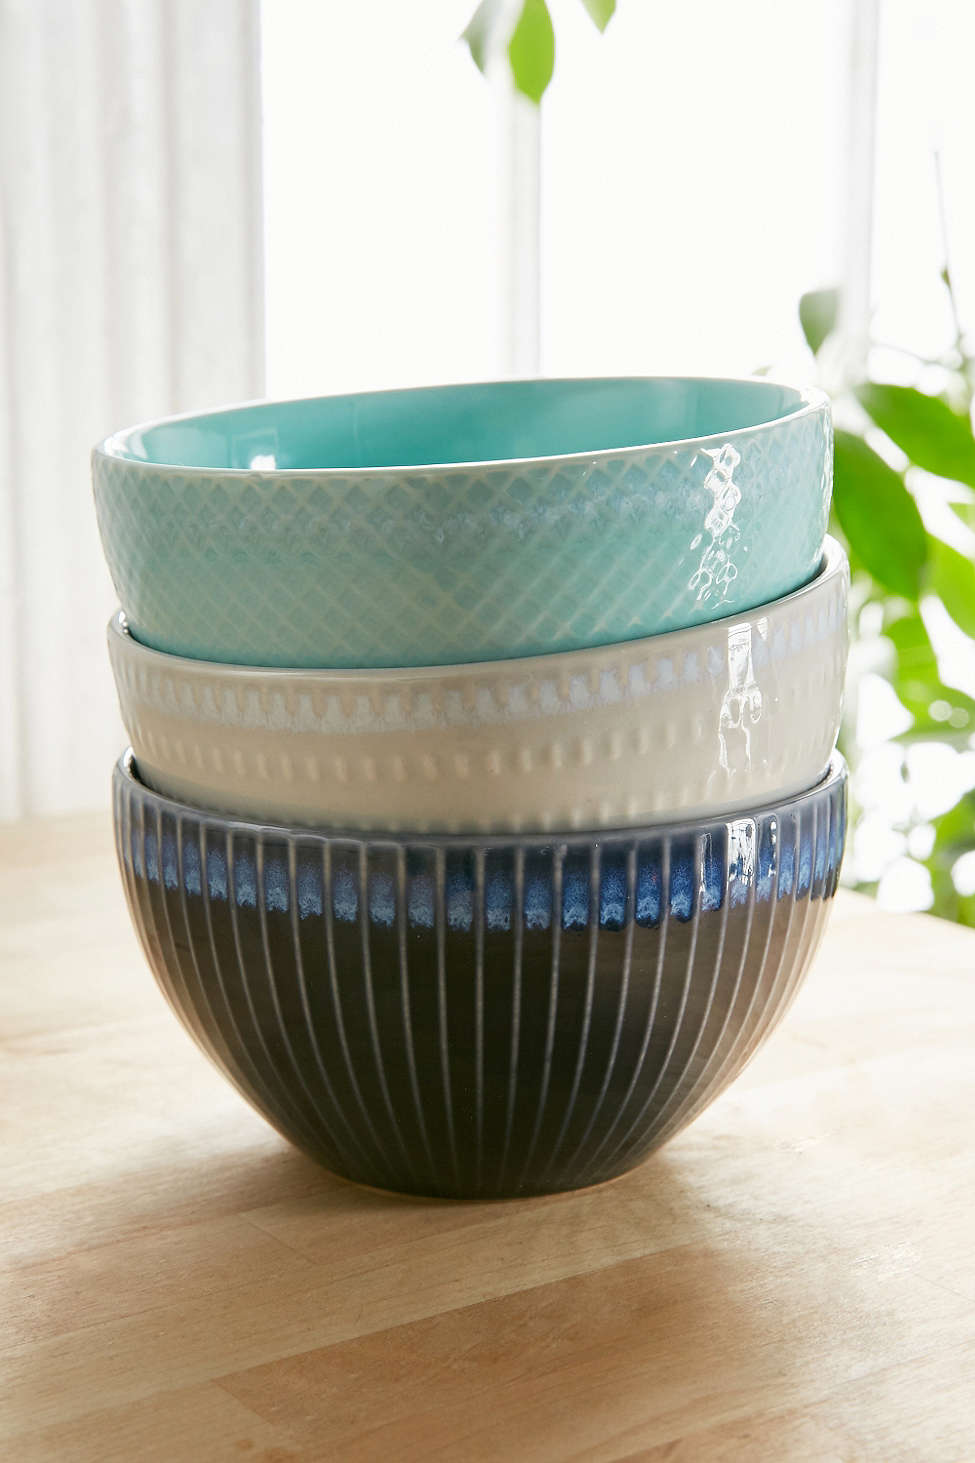 Ceramic-bowls-from-Urban-Outfitters